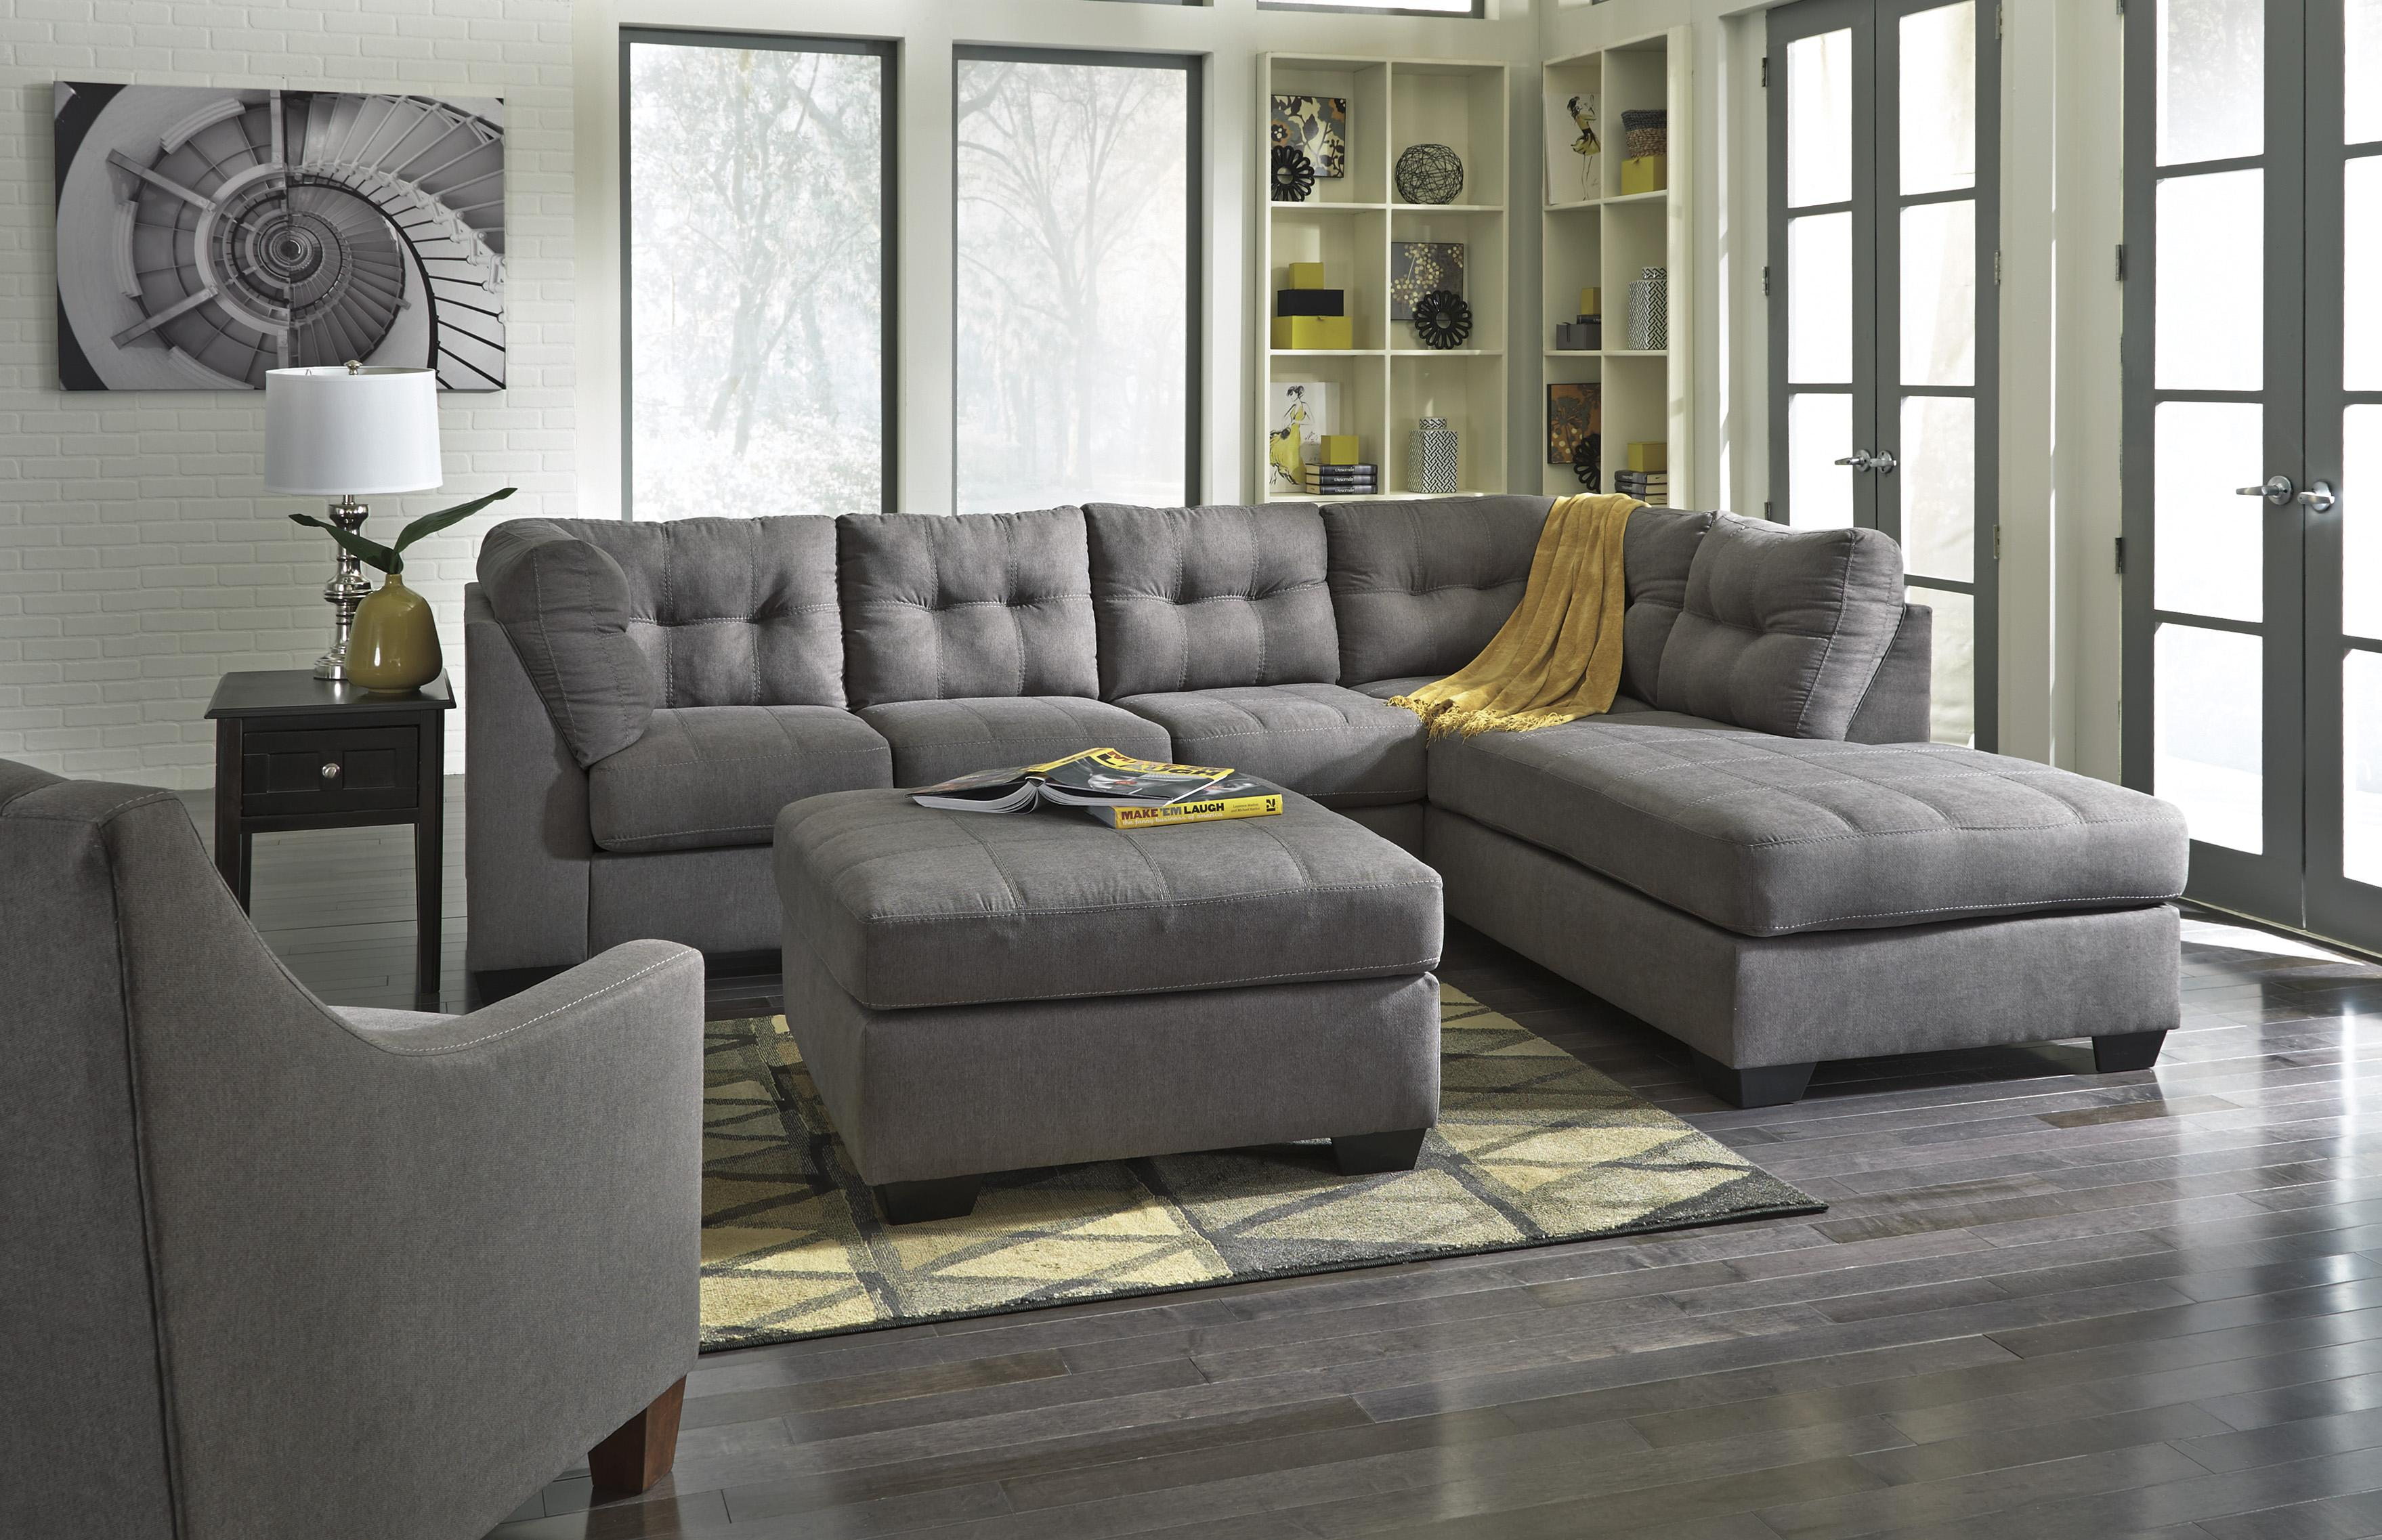 Ashley/Benchcraft Maier - Charcoal Stationary Living Room Group - Item Number: 45200 Living Room Group 3